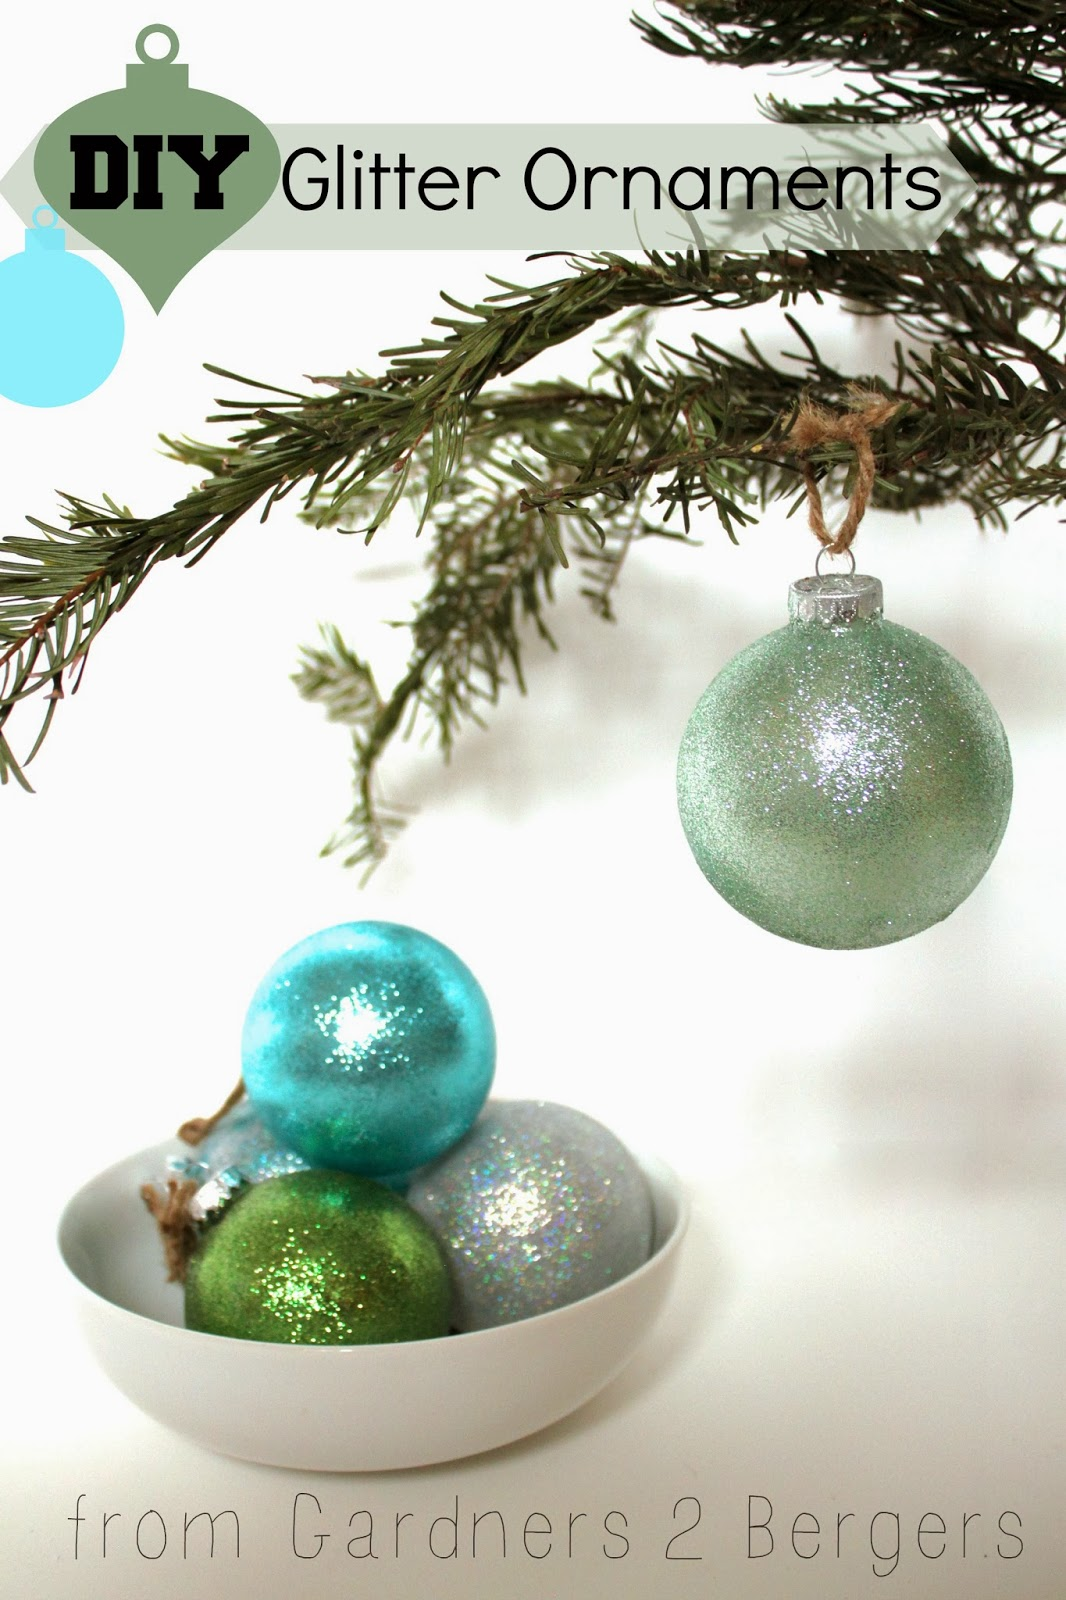 DIY-Glitter-Glass-Ornaments